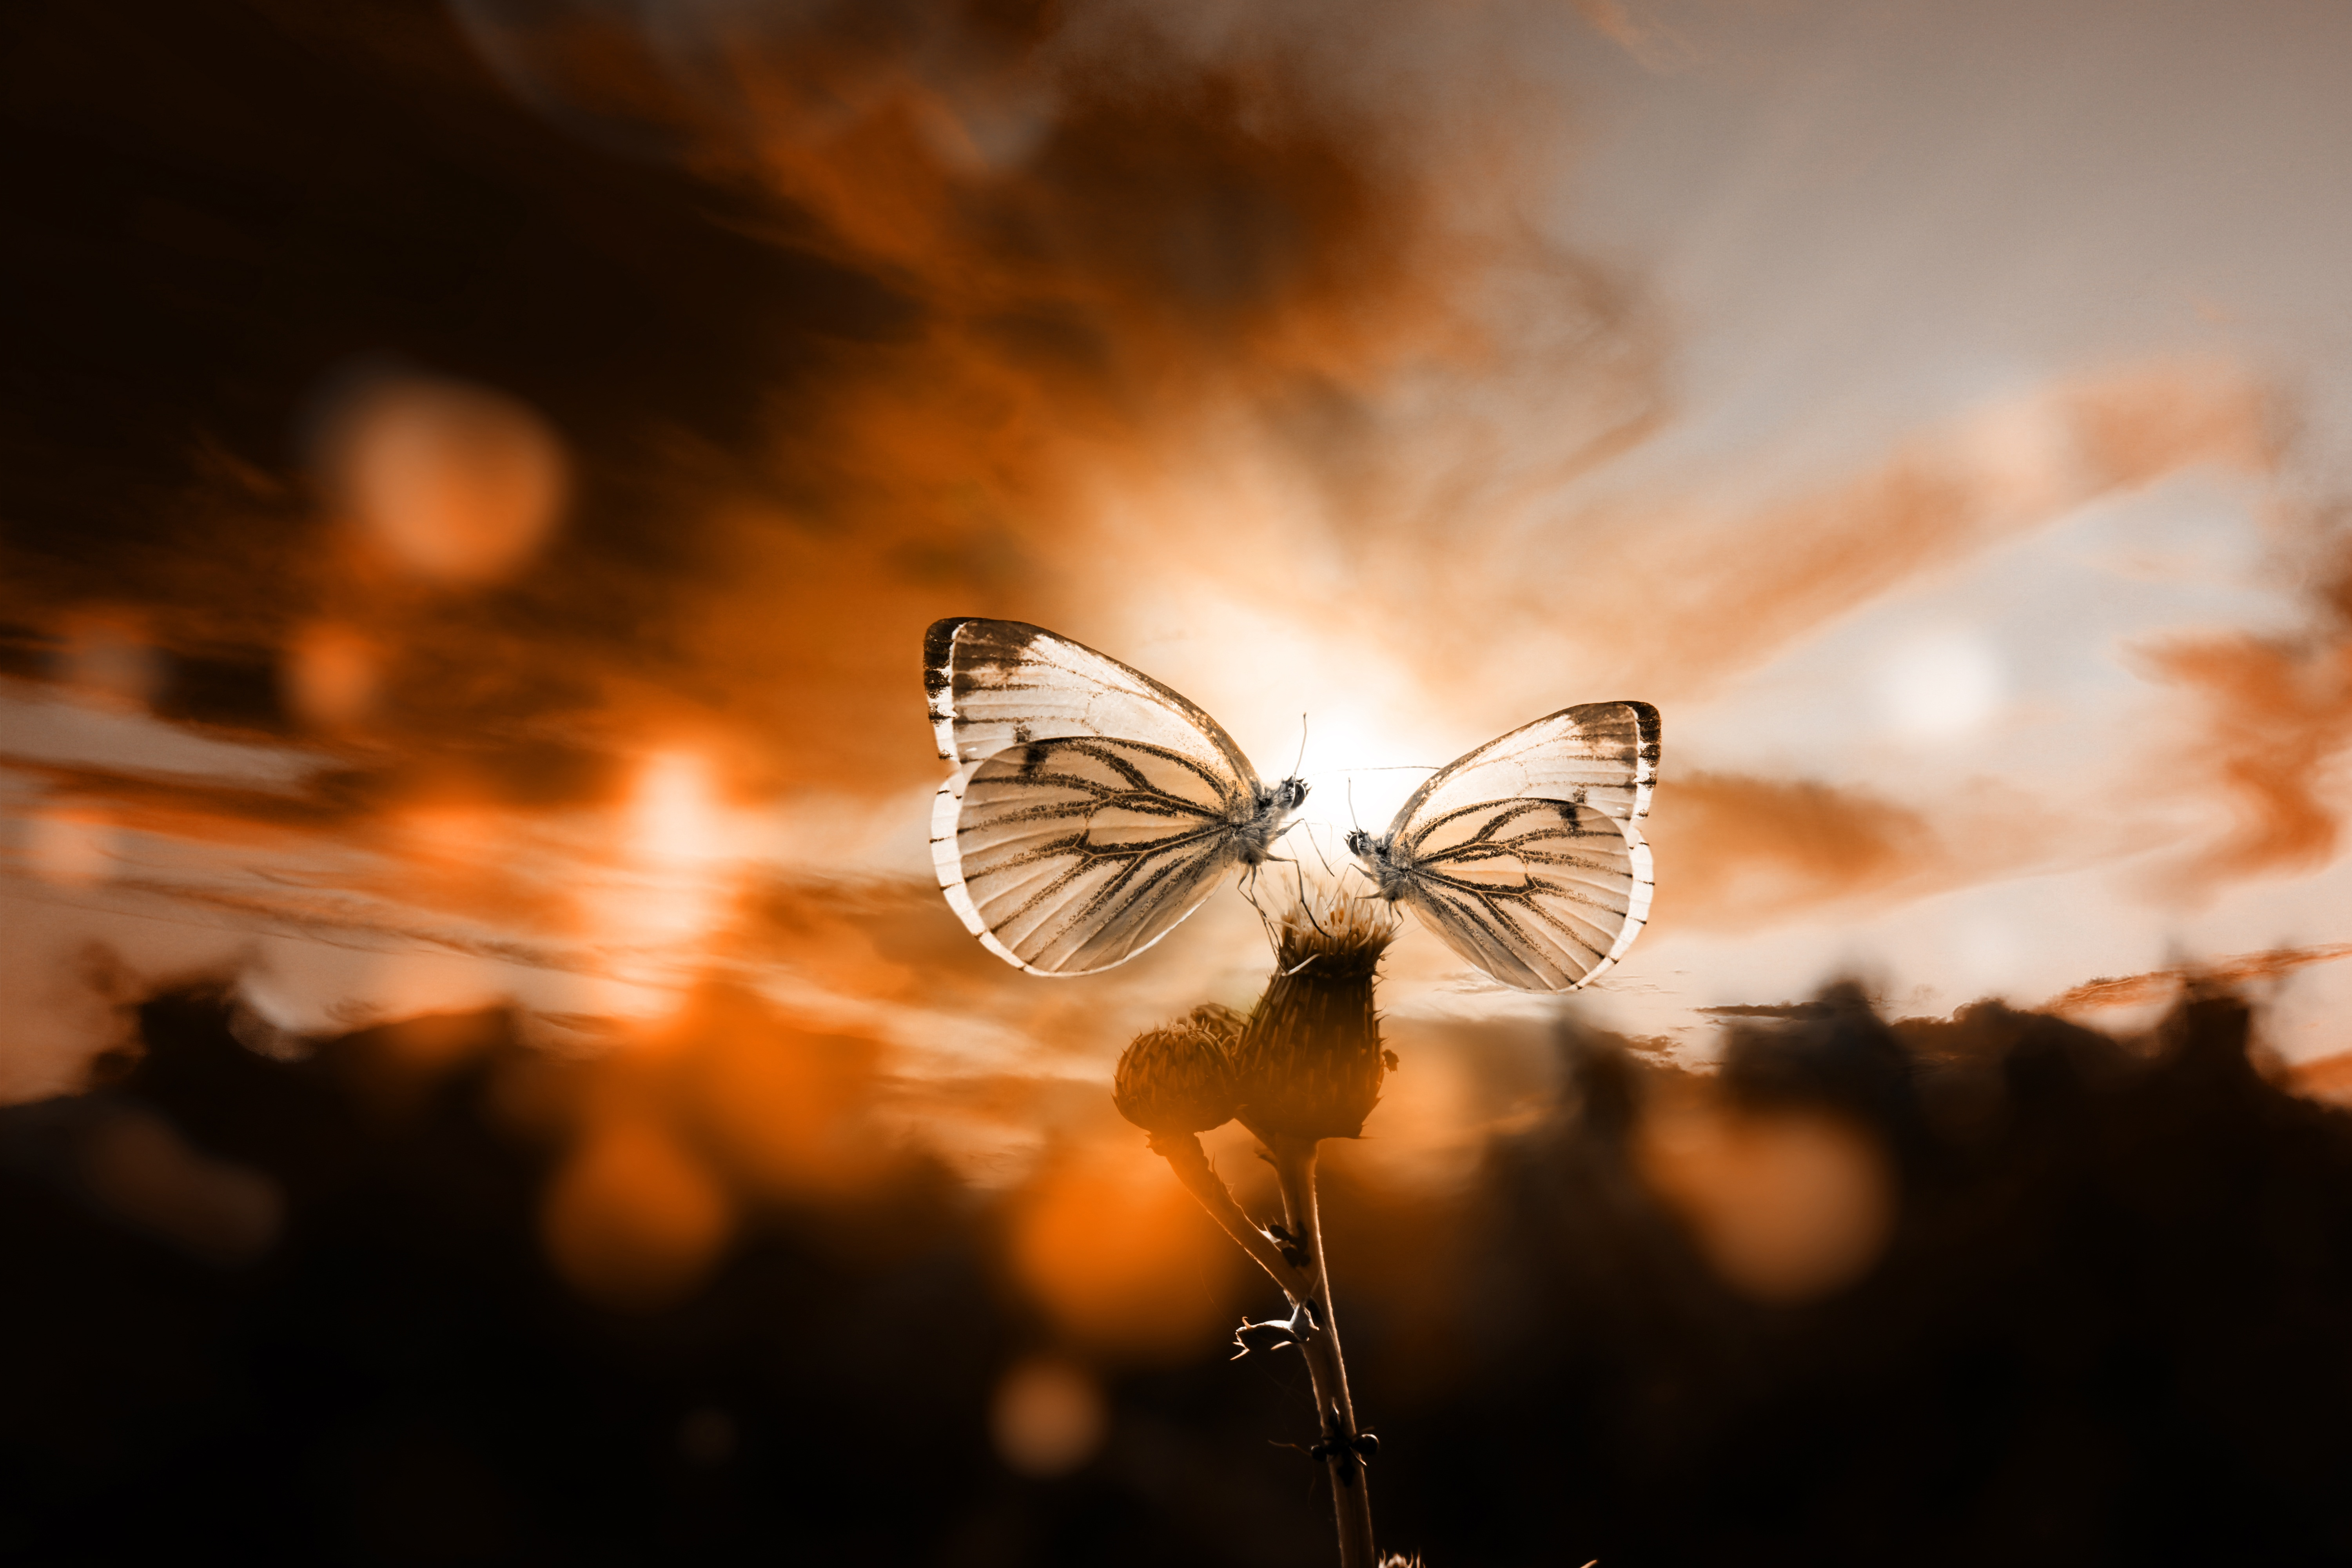 154979 Screensavers and Wallpapers Butterflies for phone. Download Macro, Butterflies, Sky, Plant, Dusk, Twilight, Backlight, Illumination, Romantically, Romantic pictures for free